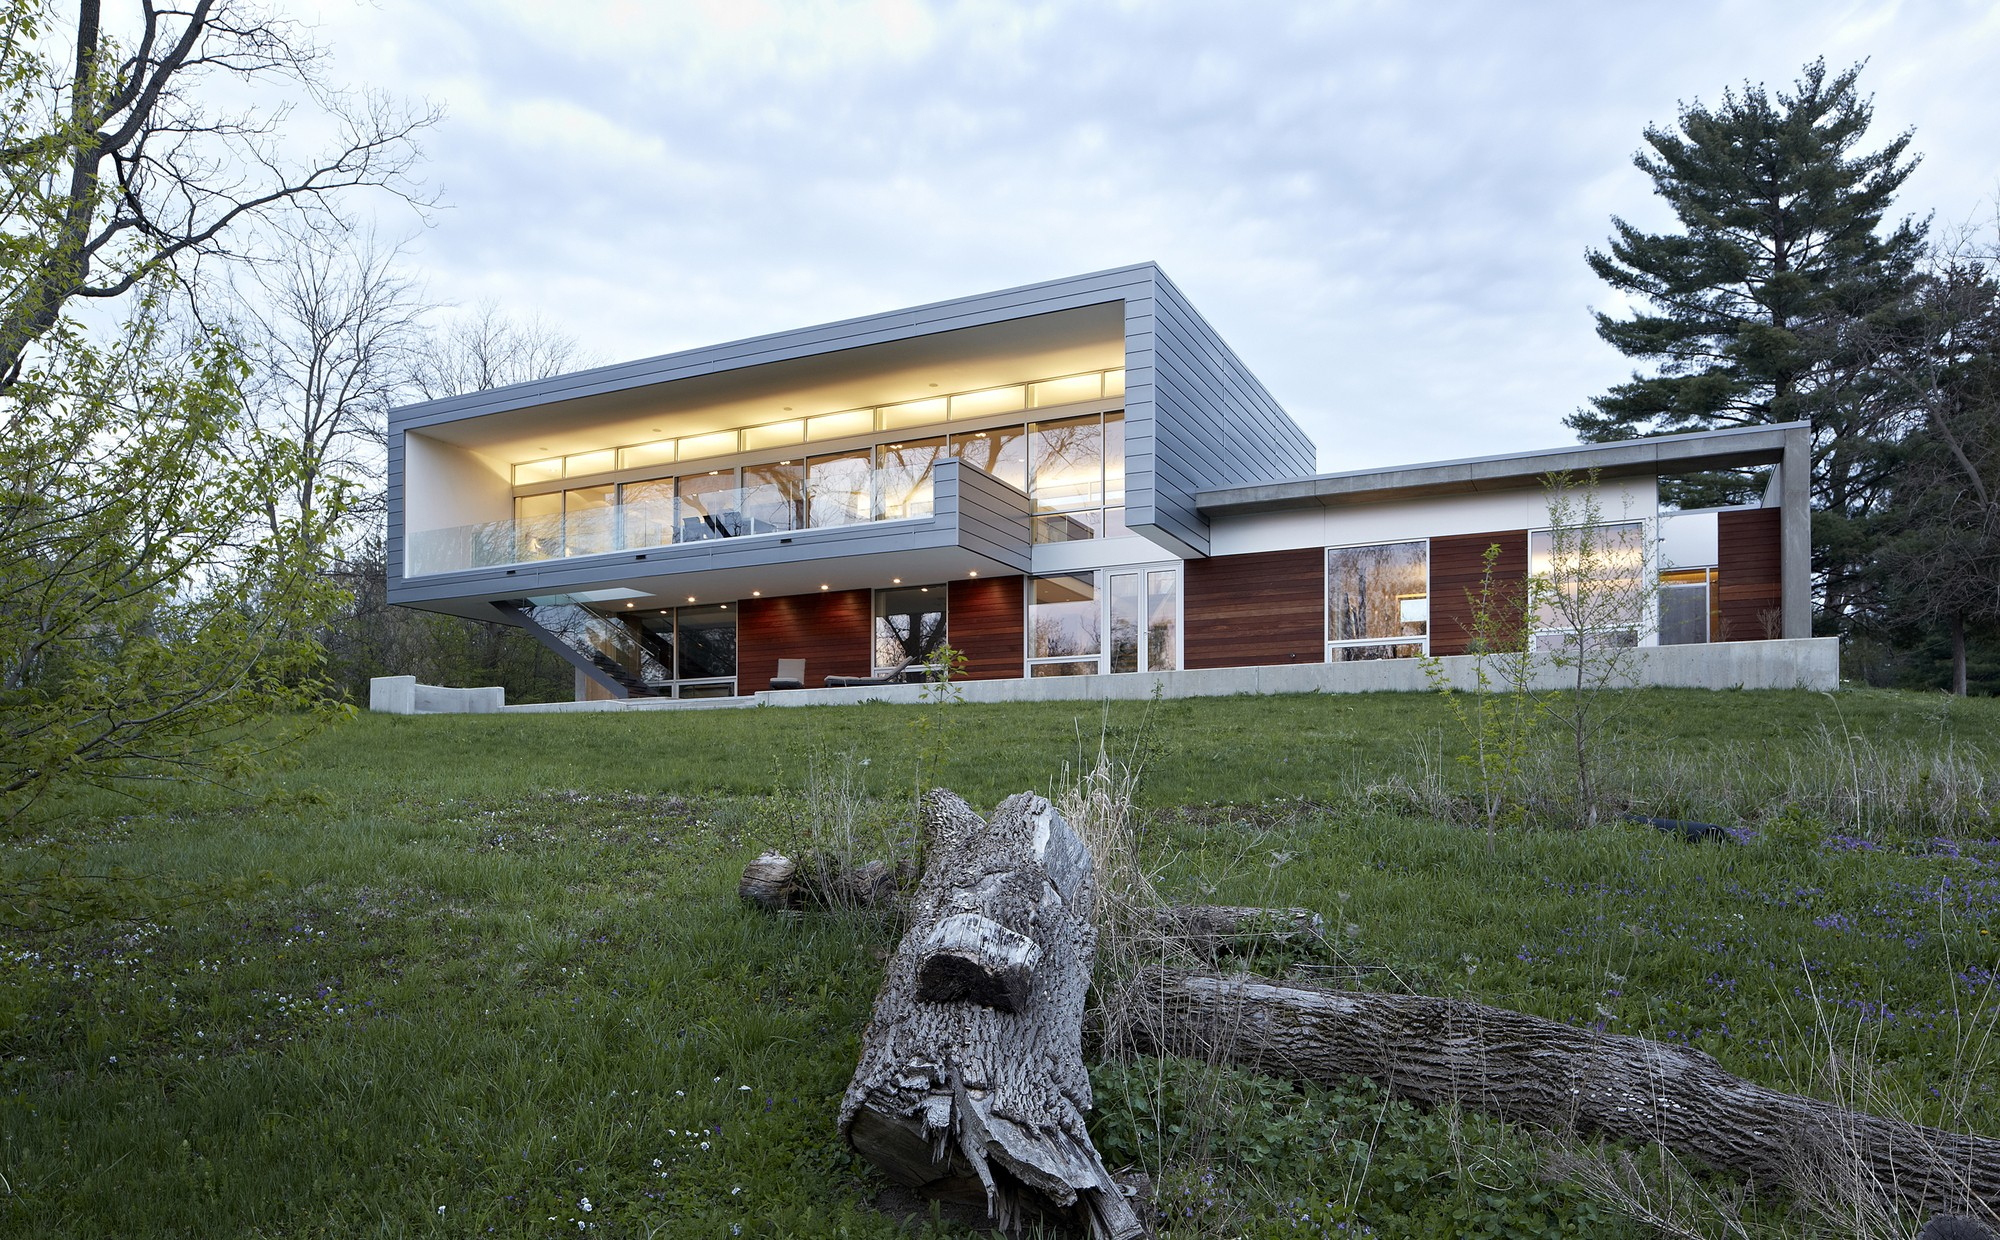 54373306c07a80a74a000073_riverview-house-studio-dwell-architects_riverview_house_studio_dwell_architects_archdaily_a